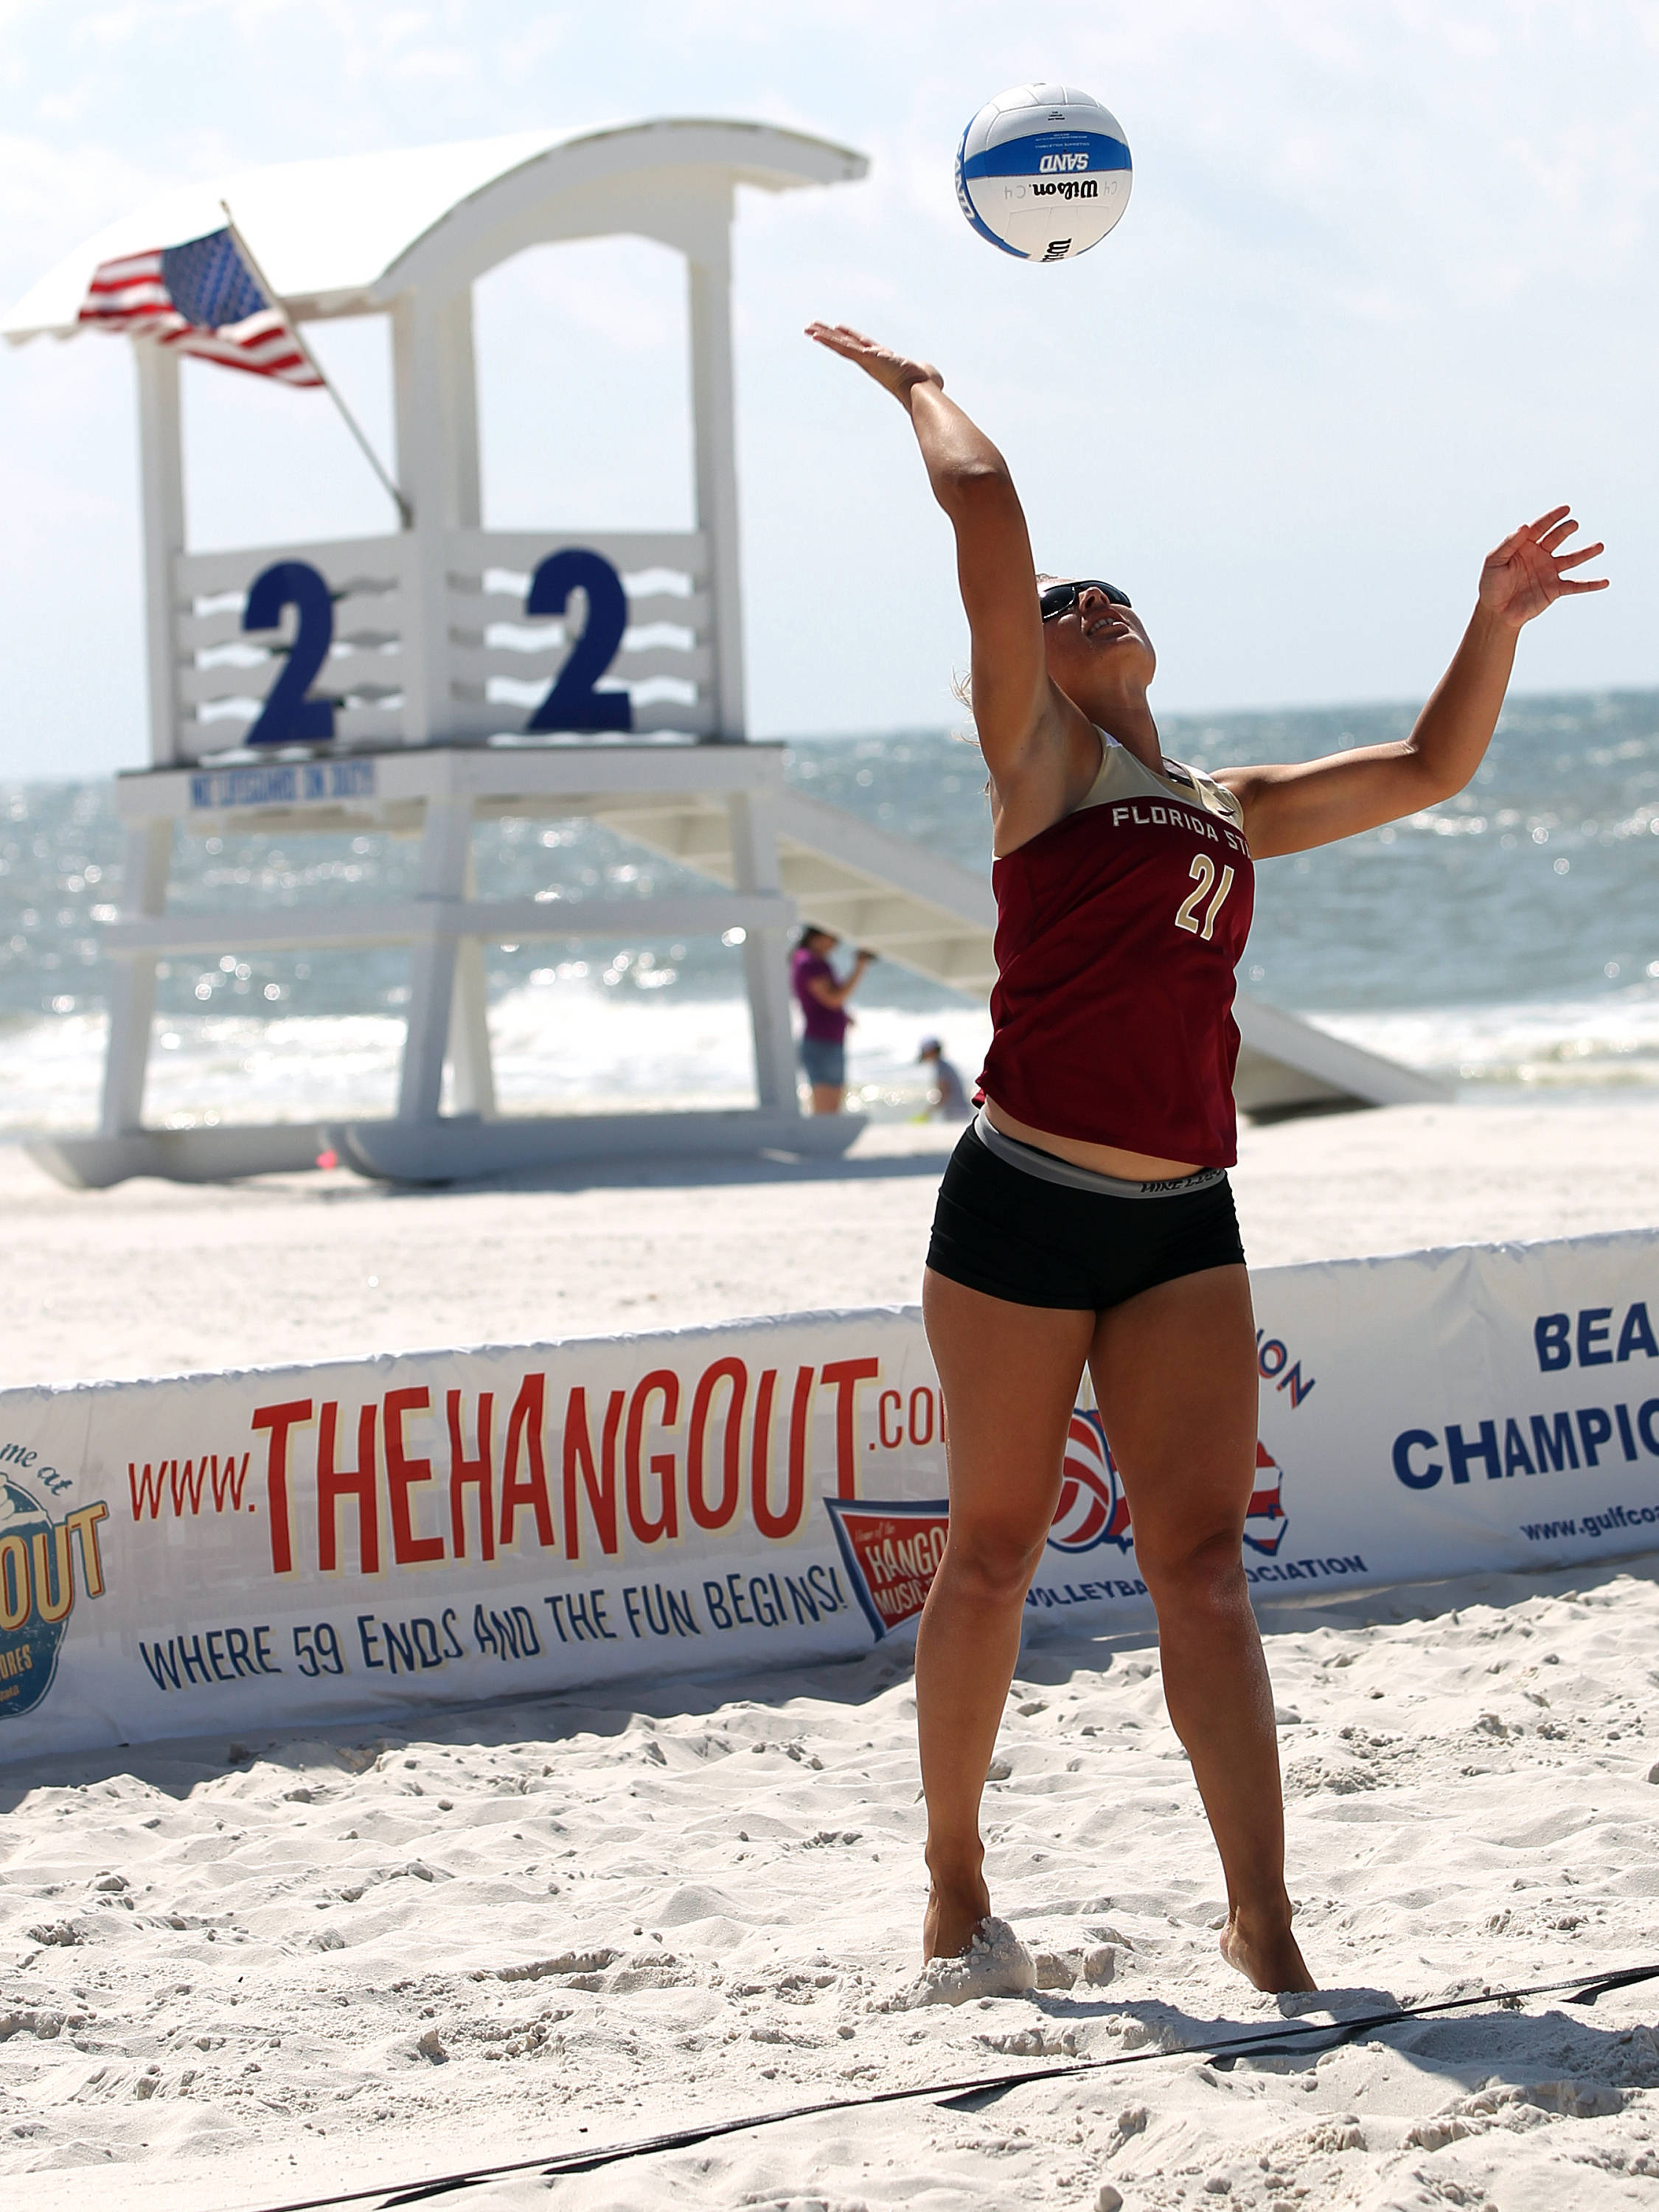 Jace Pardon serving into the wind, AVCA Collegiate Sand Volleyball National  Championships - Pairs,  Gulf Shores, Alabama, 05/05/13 . (Photo by Steve Musco)